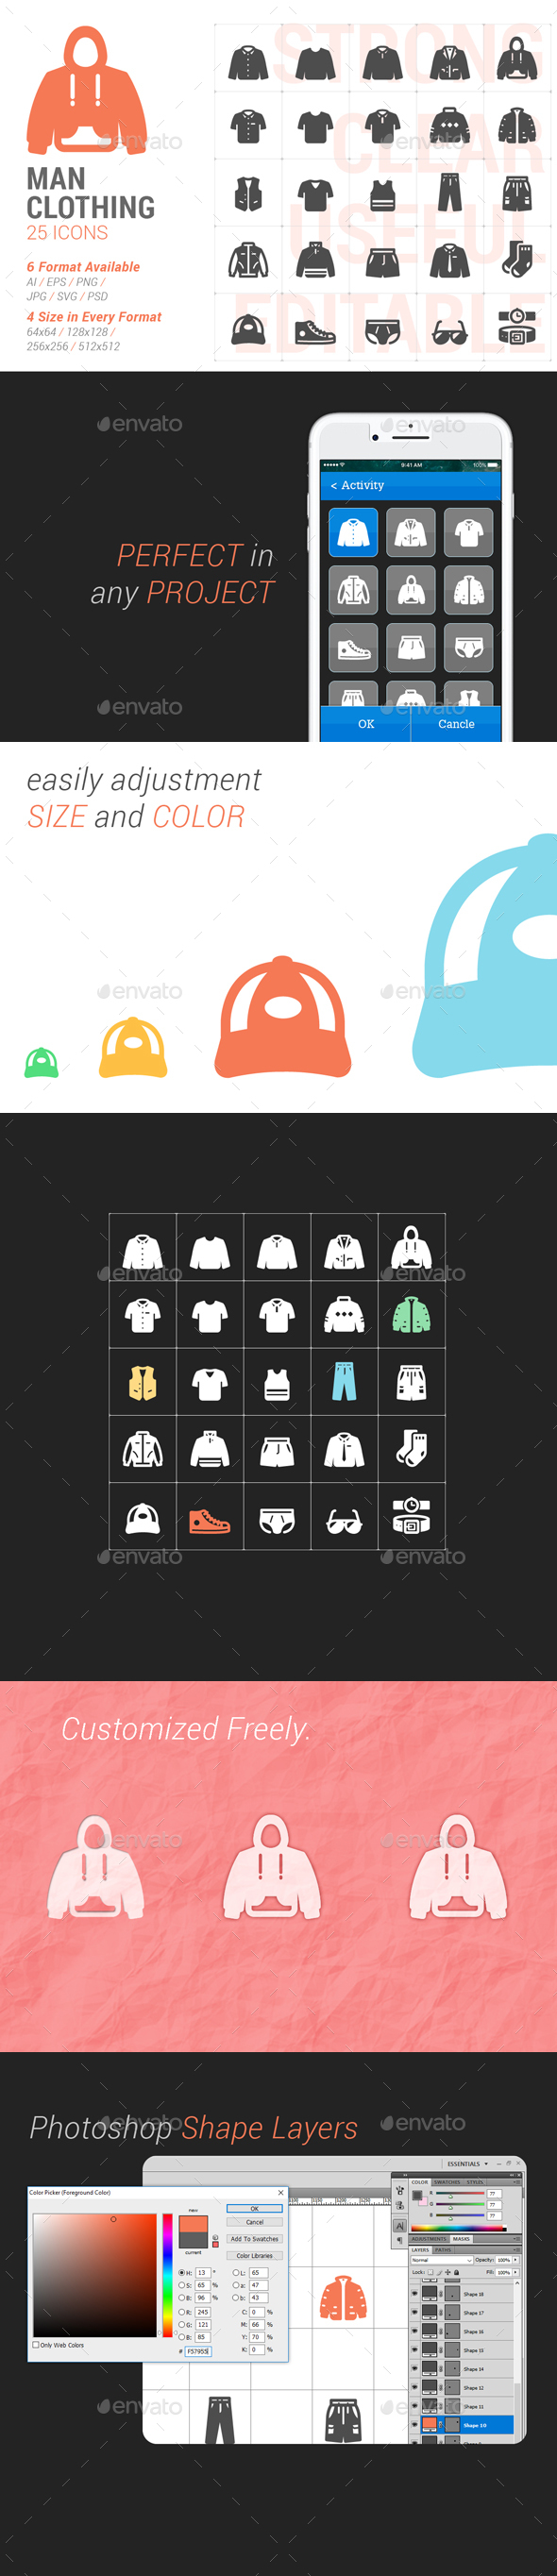 Man Clothing Filled Icon - Objects Icons